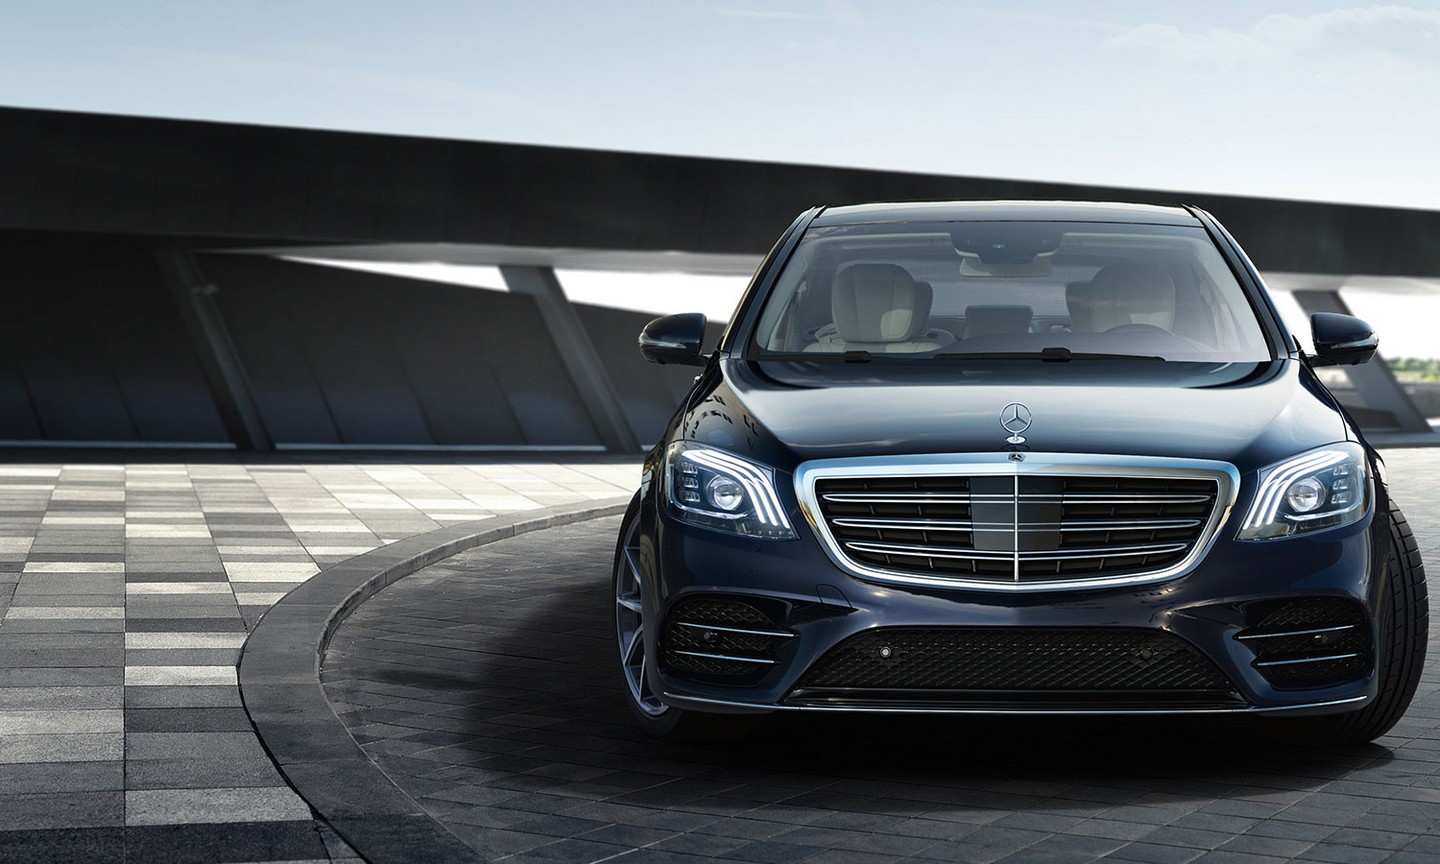 2019 Luxury Car Of The Year: Mercedes-Benz Offers Another